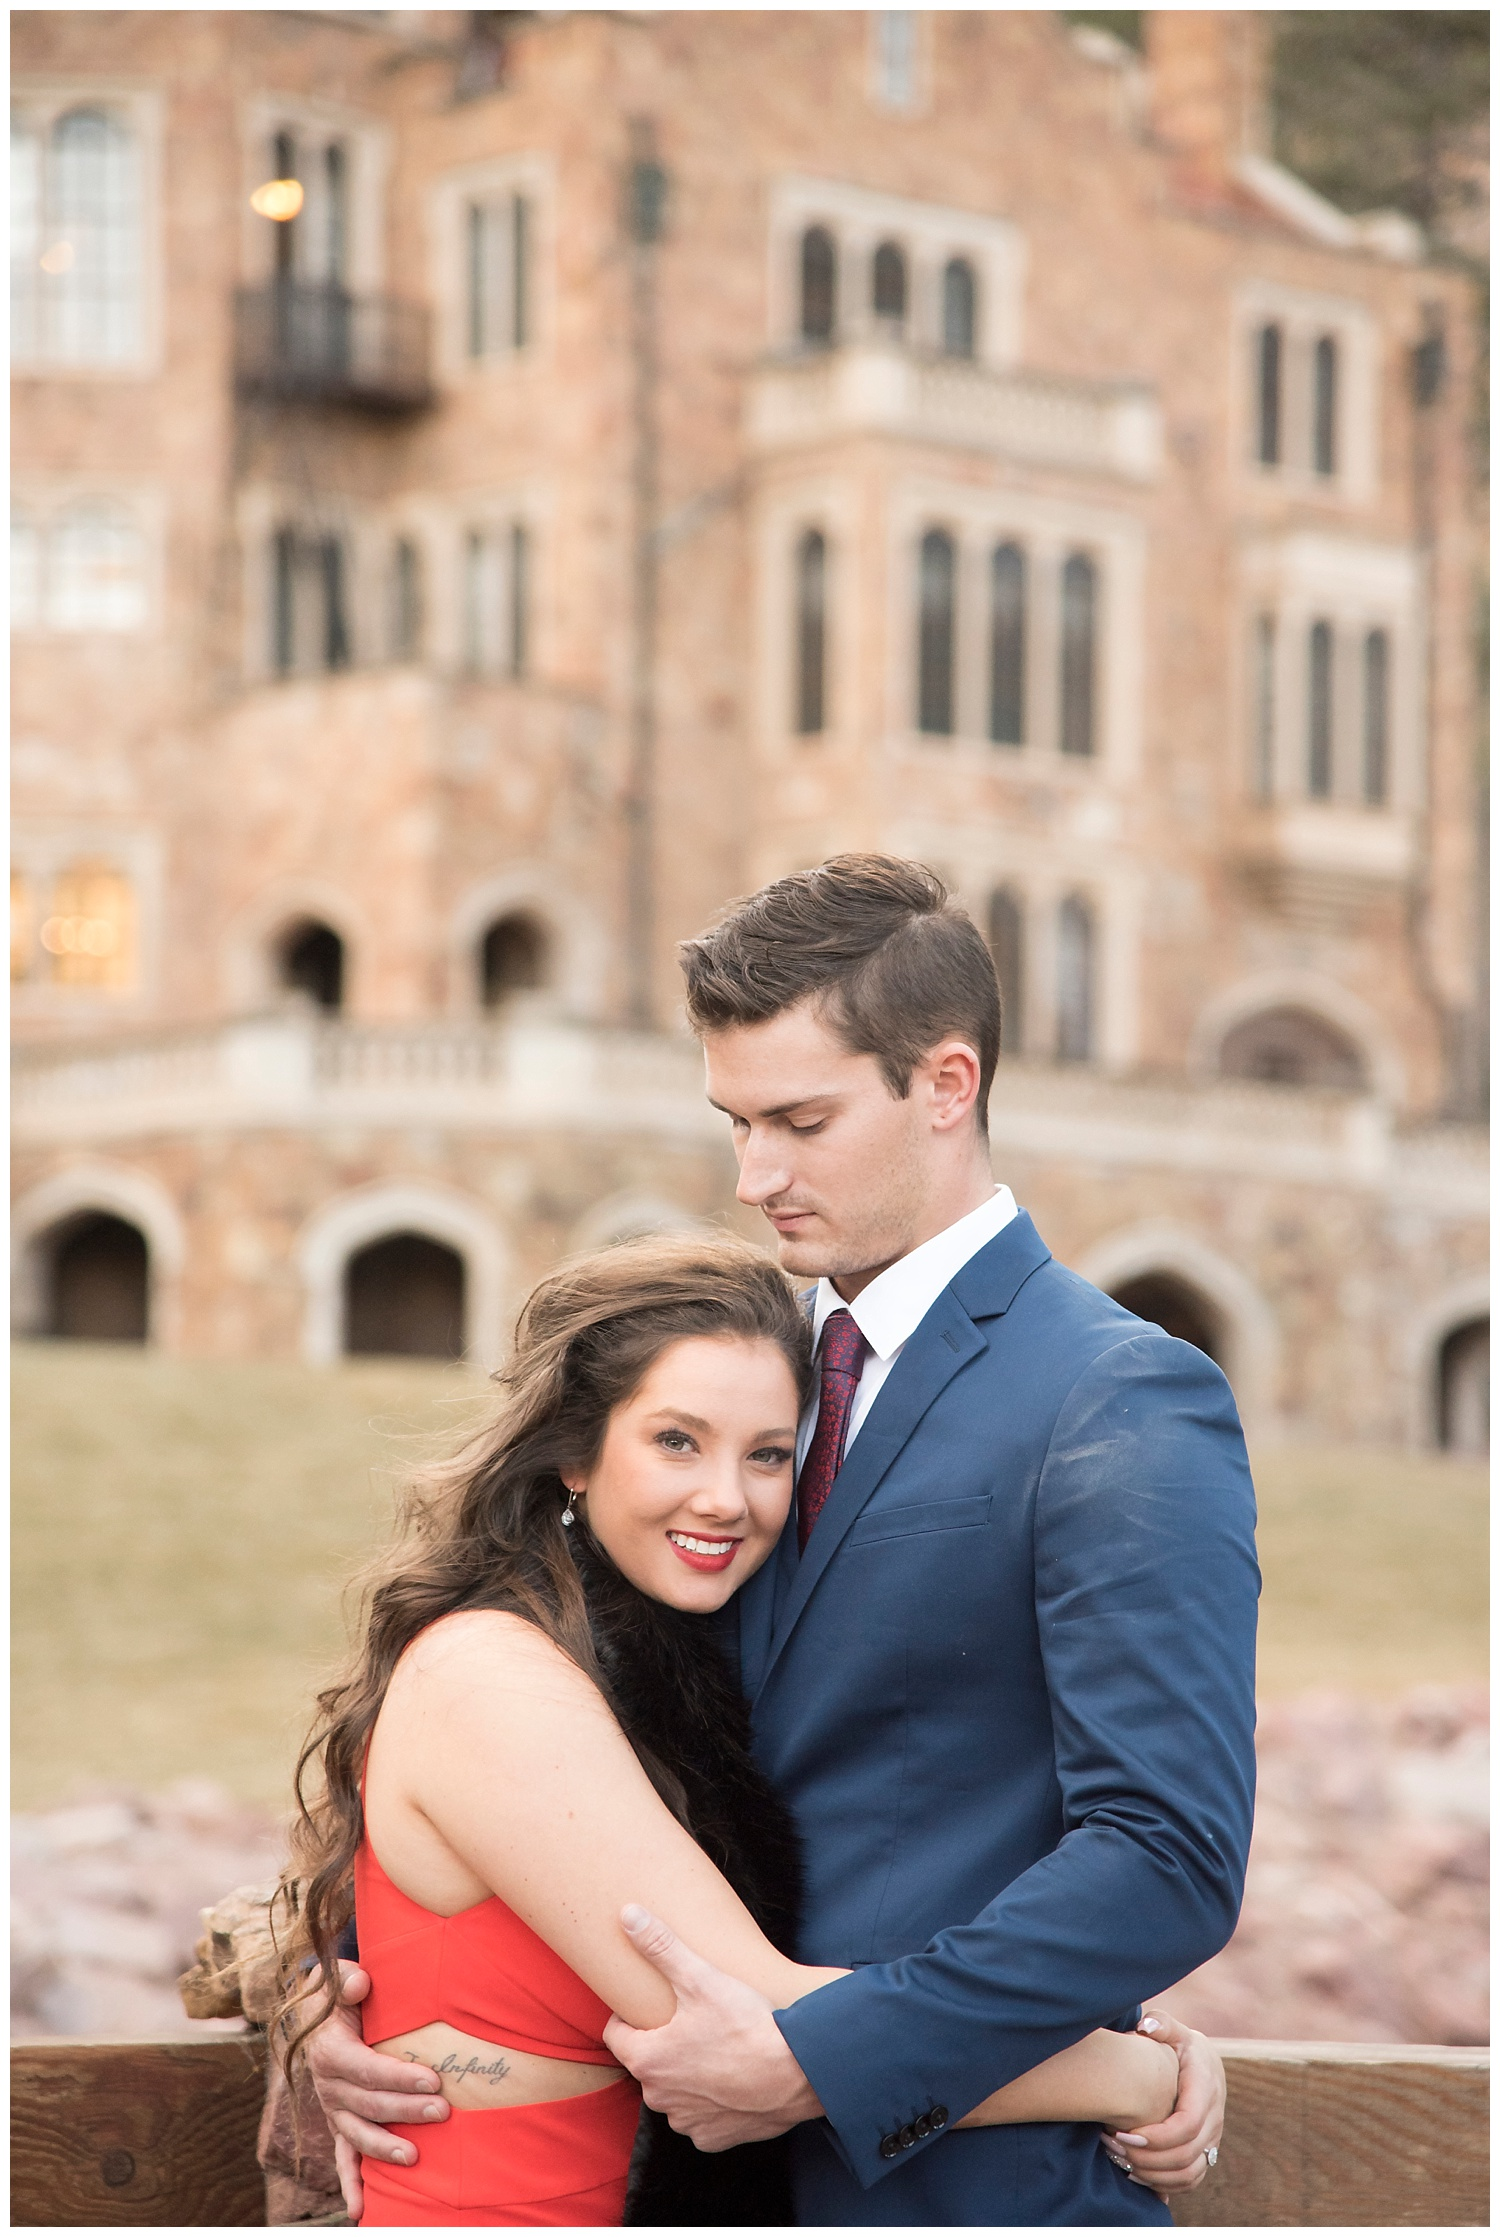 Colorado_Engagement_Photographer_Glen_Eyrie_Castle_Magical_Proposal_Fairytale_017.jpg